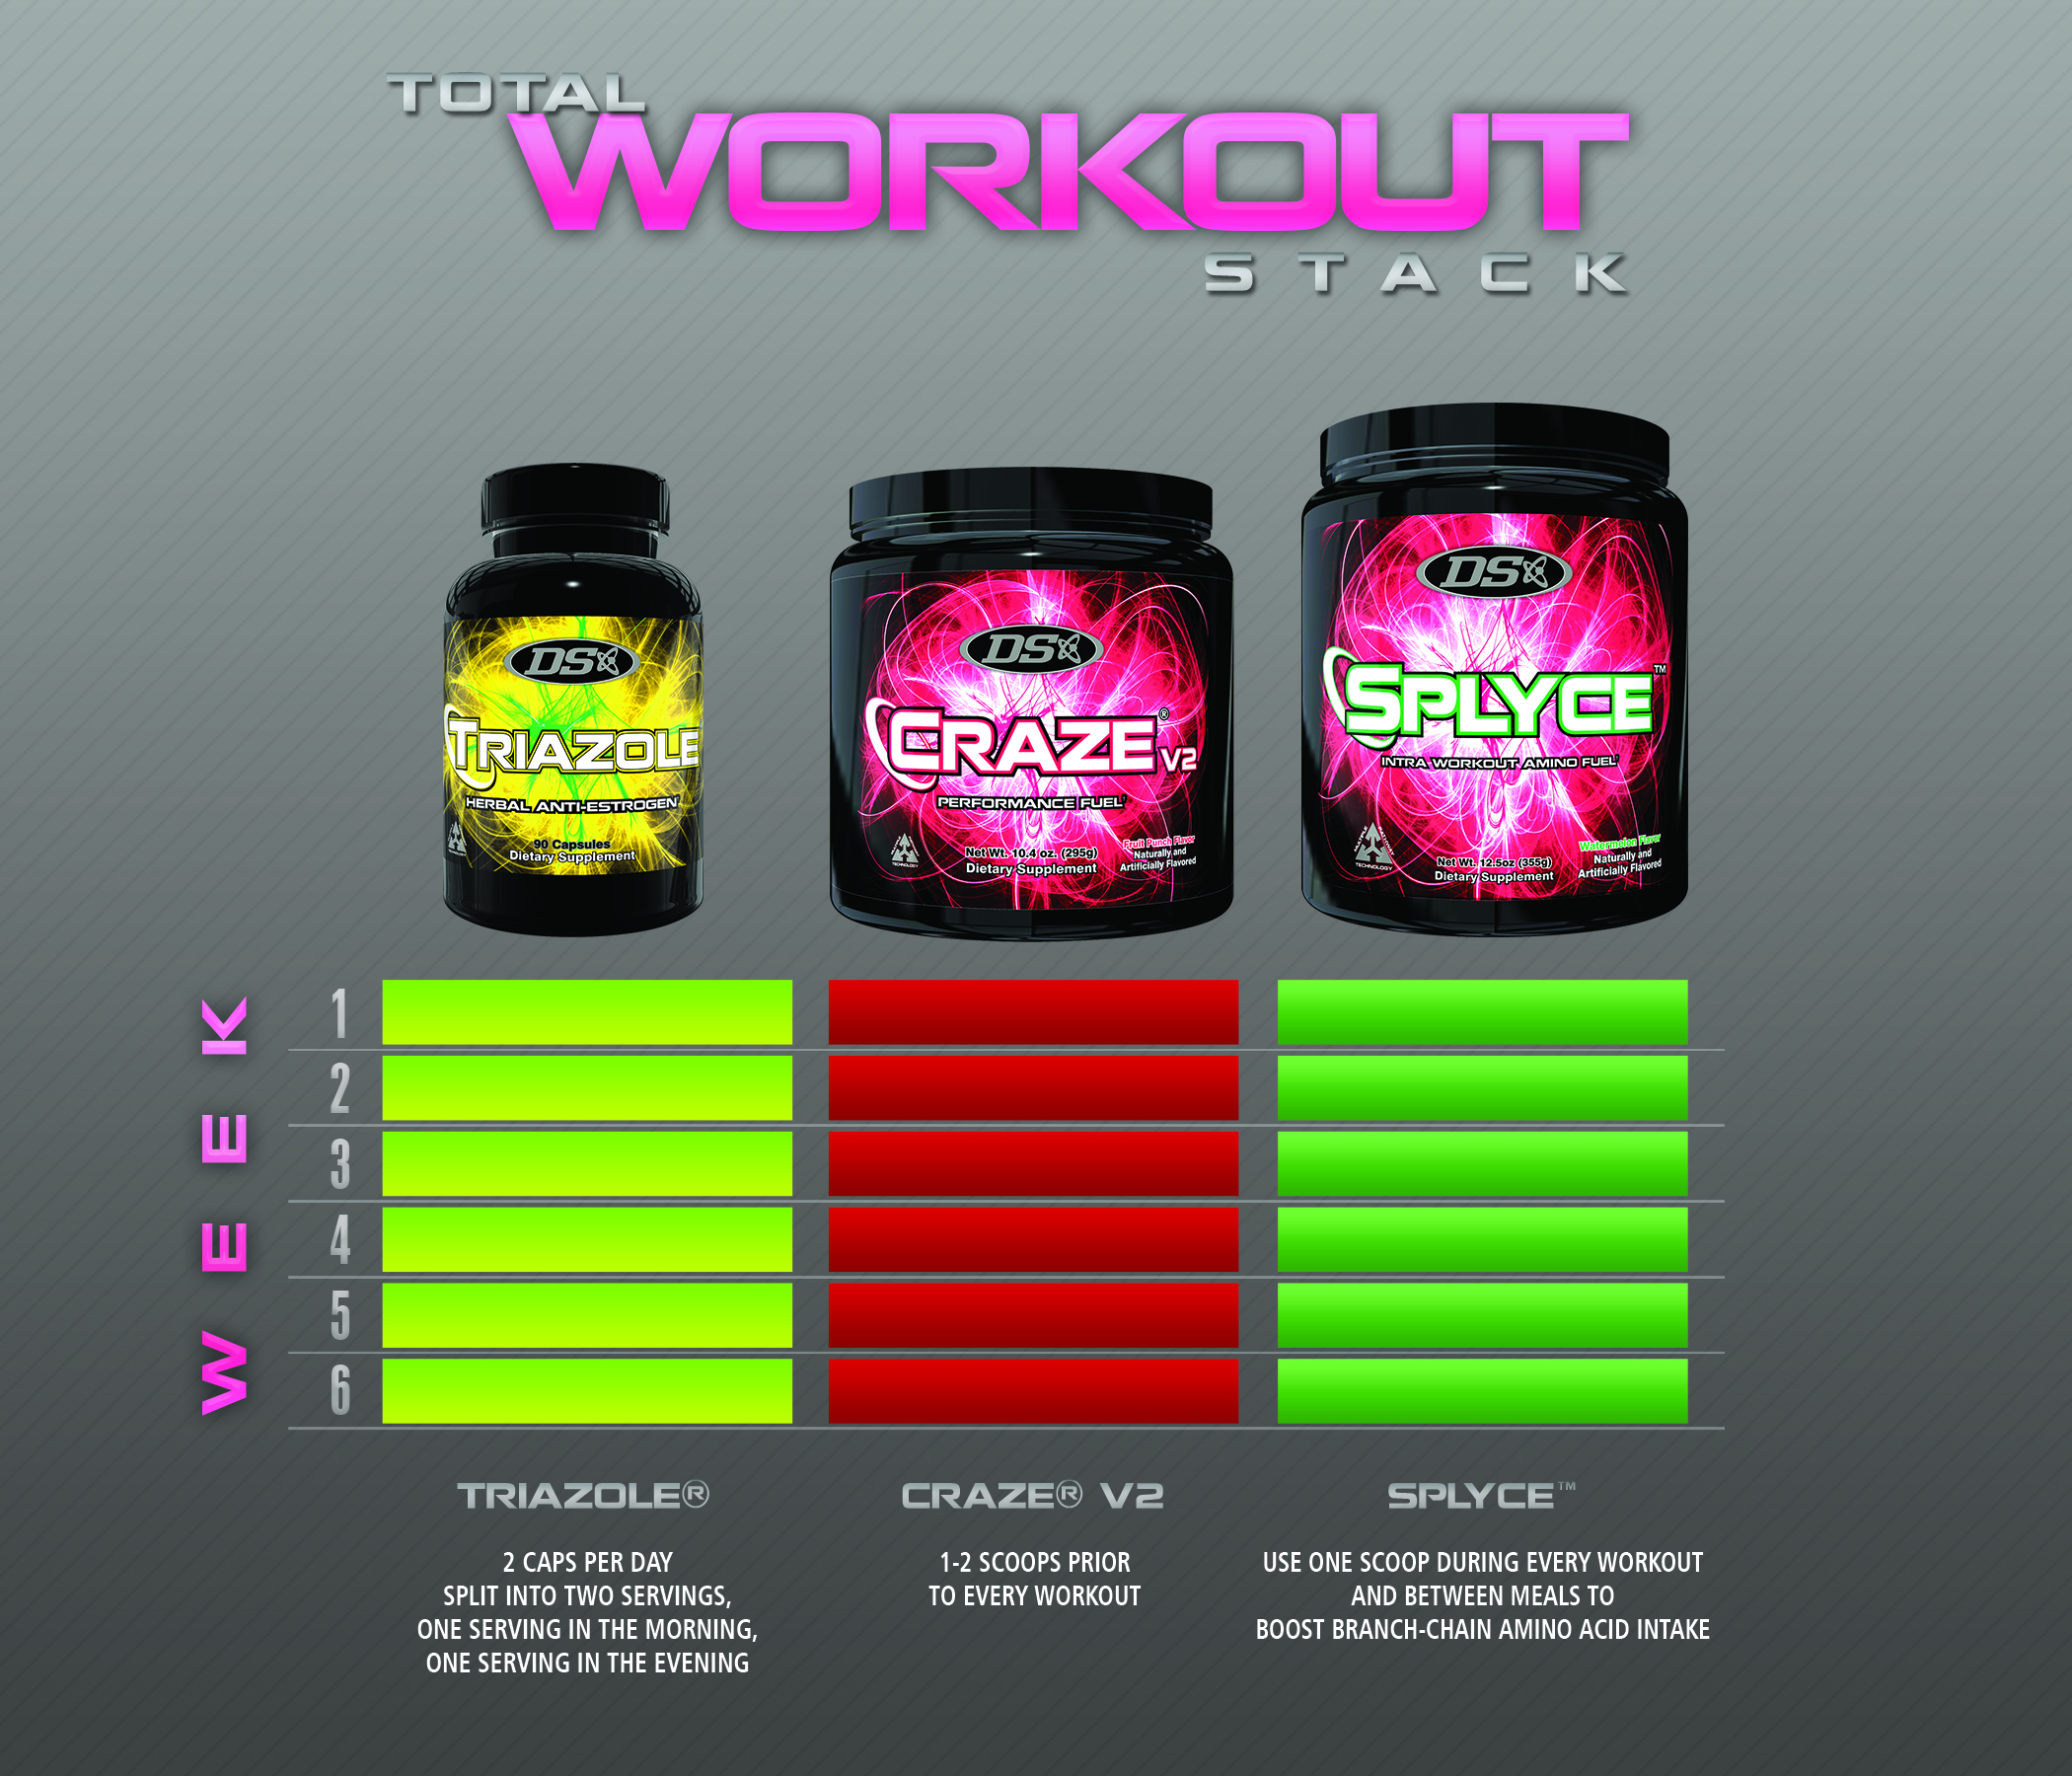 Total Workout Stack for Women